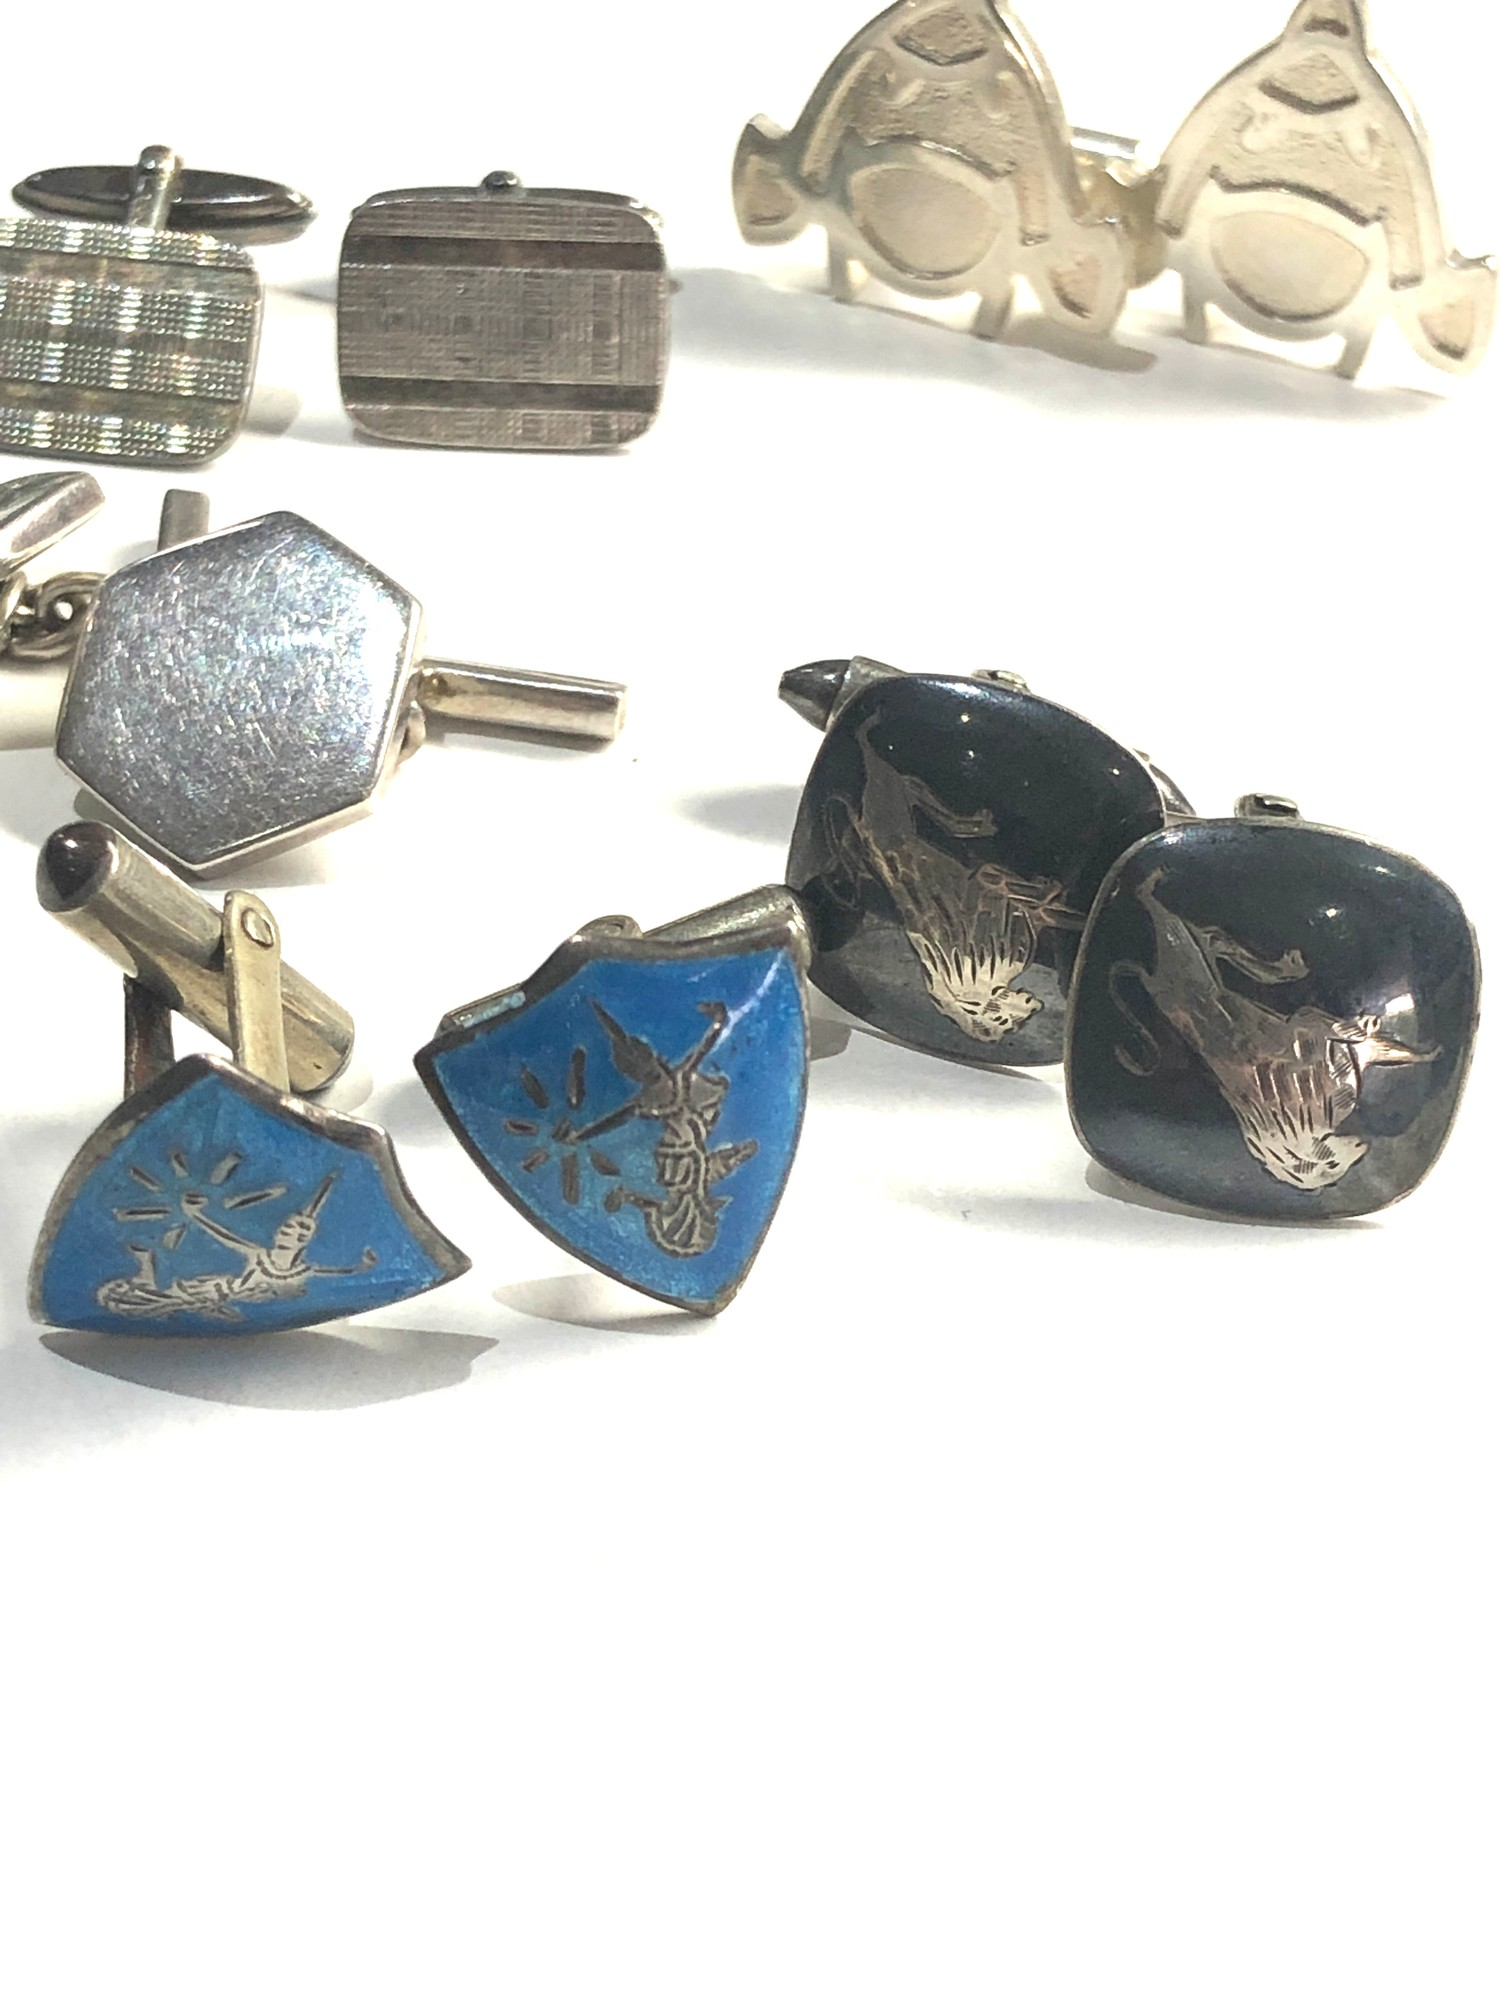 5 pairs of vintage gents silver cufflinks - Image 4 of 4